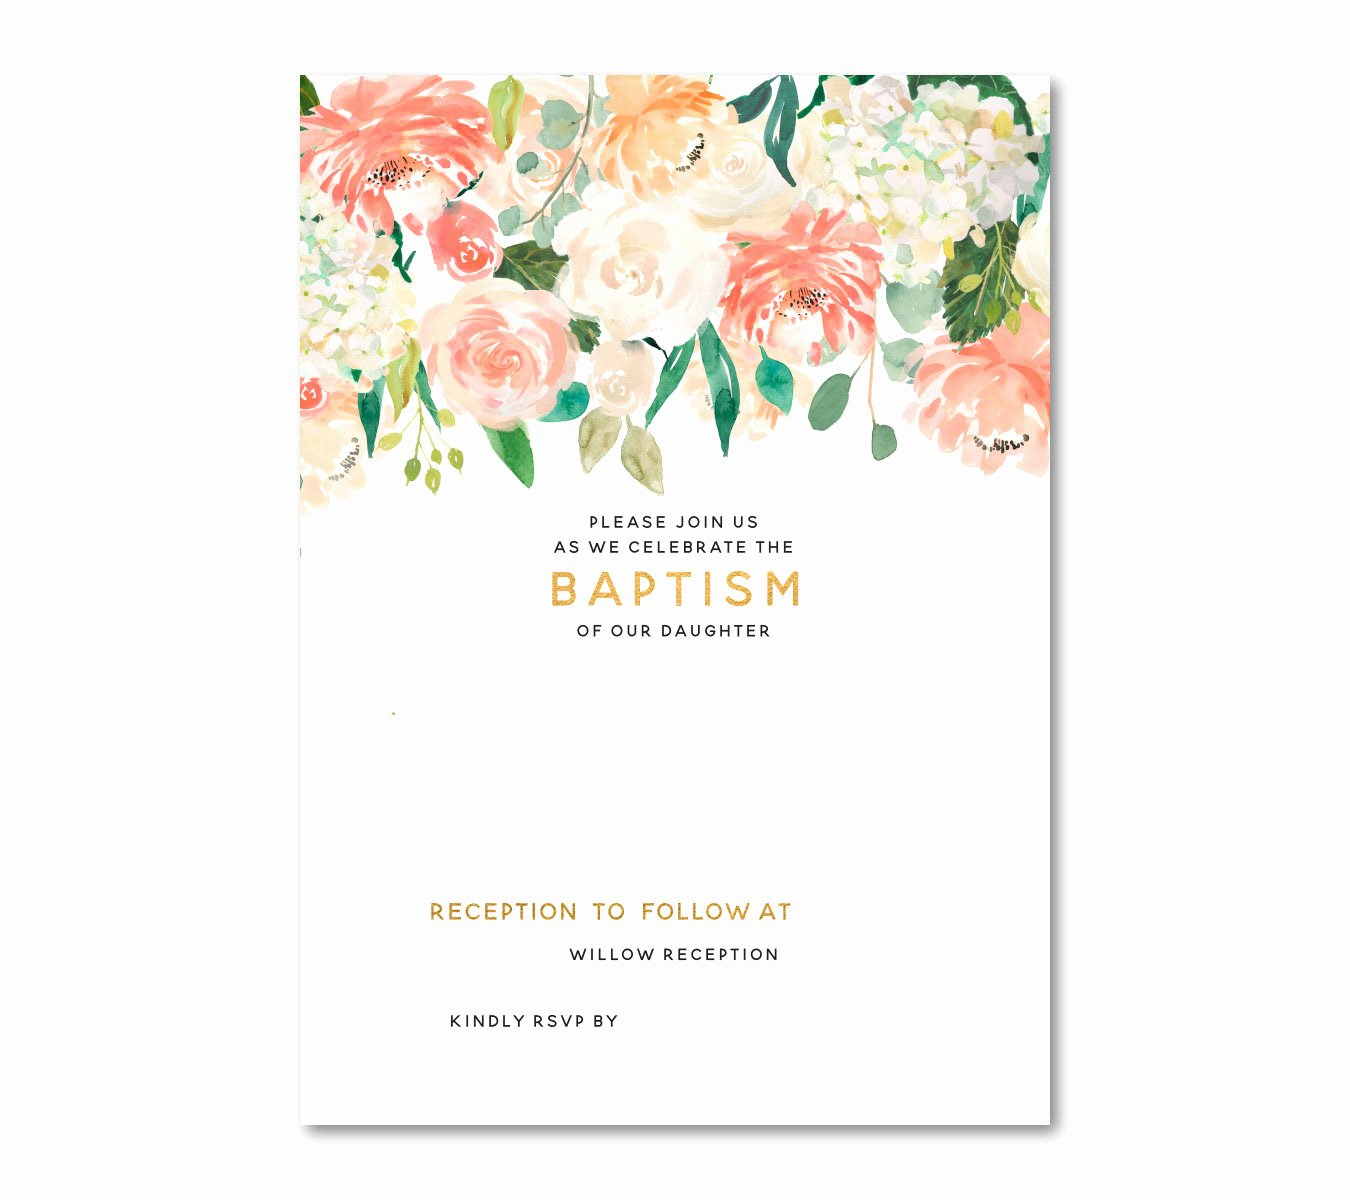 Floral Invitation Template Lovely Free Floral Baptism Invitation Template